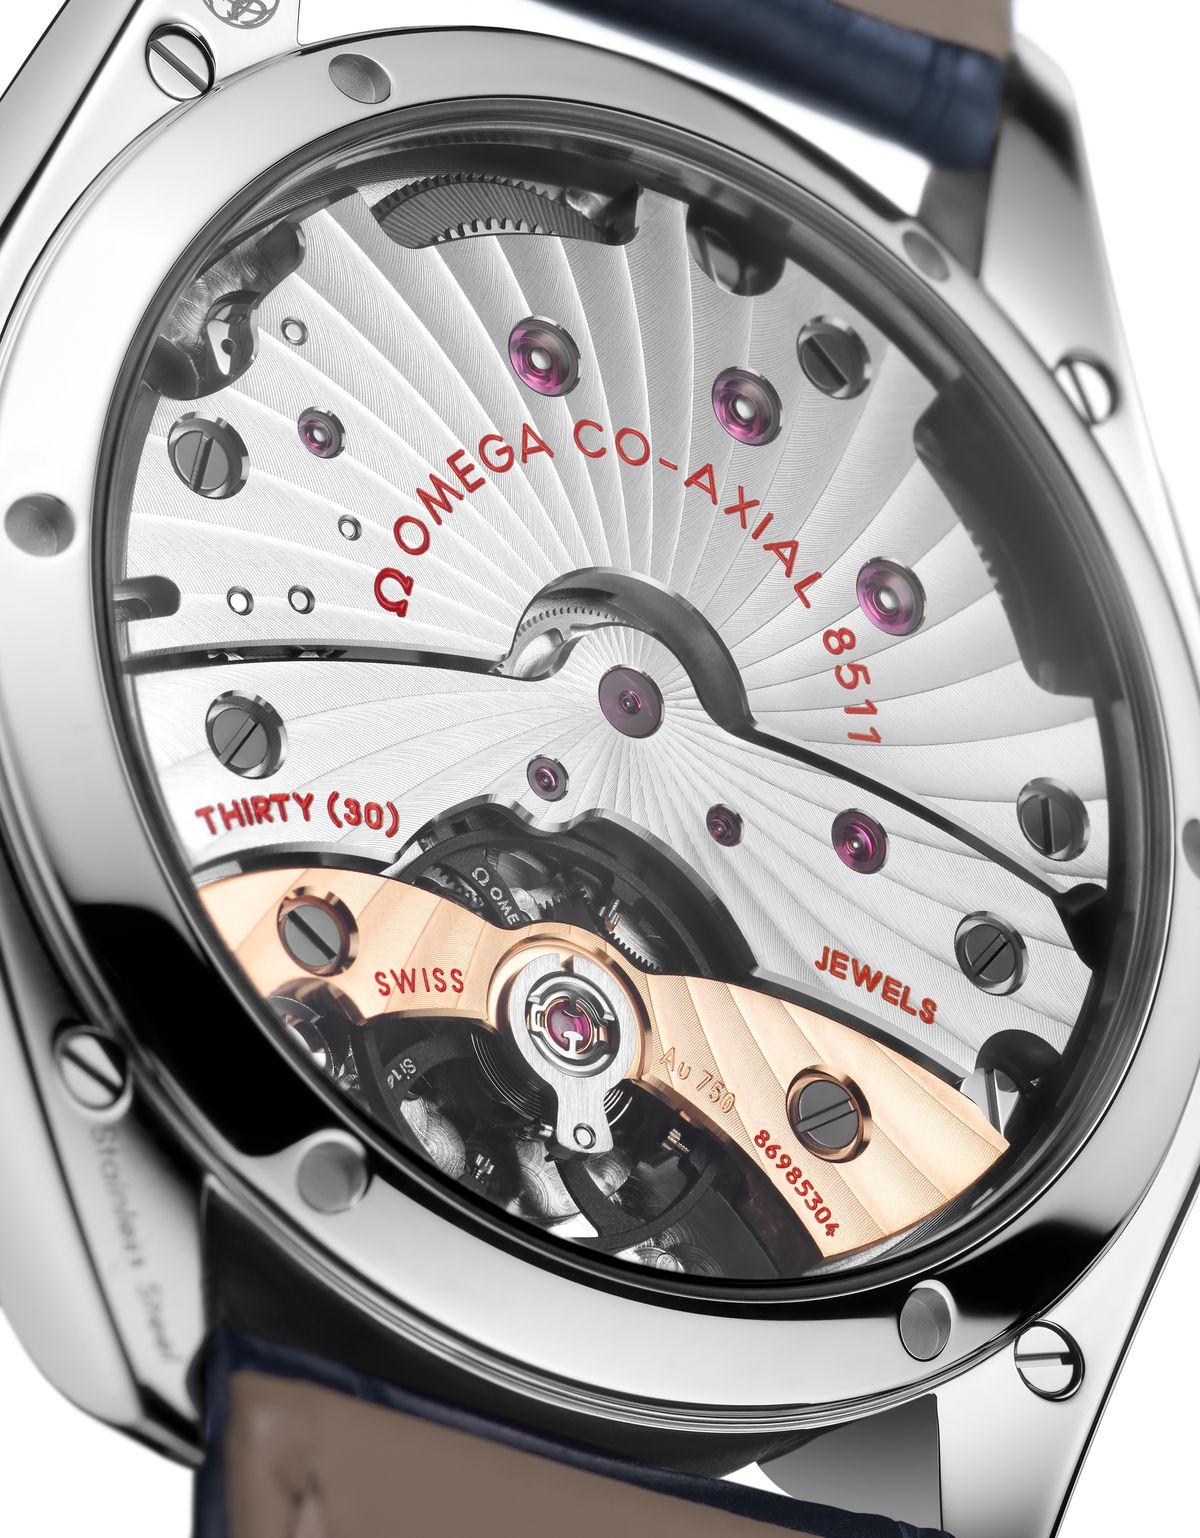 Omega De Ville Tresor Orbis Edition Caliber 8511 Movement